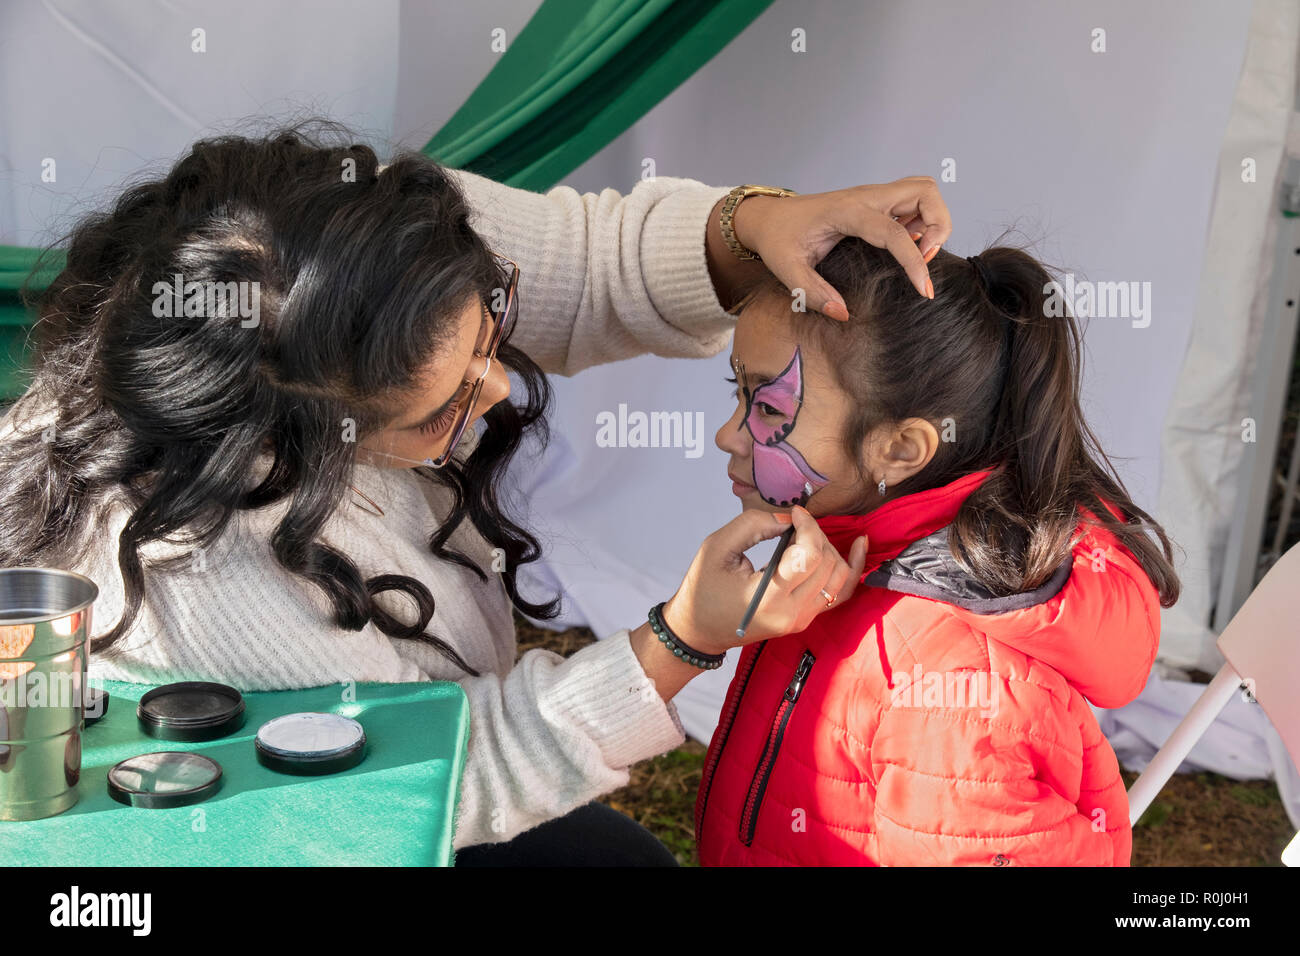 Queens Face Stock Photos & Queens Face Stock Images - Alamy